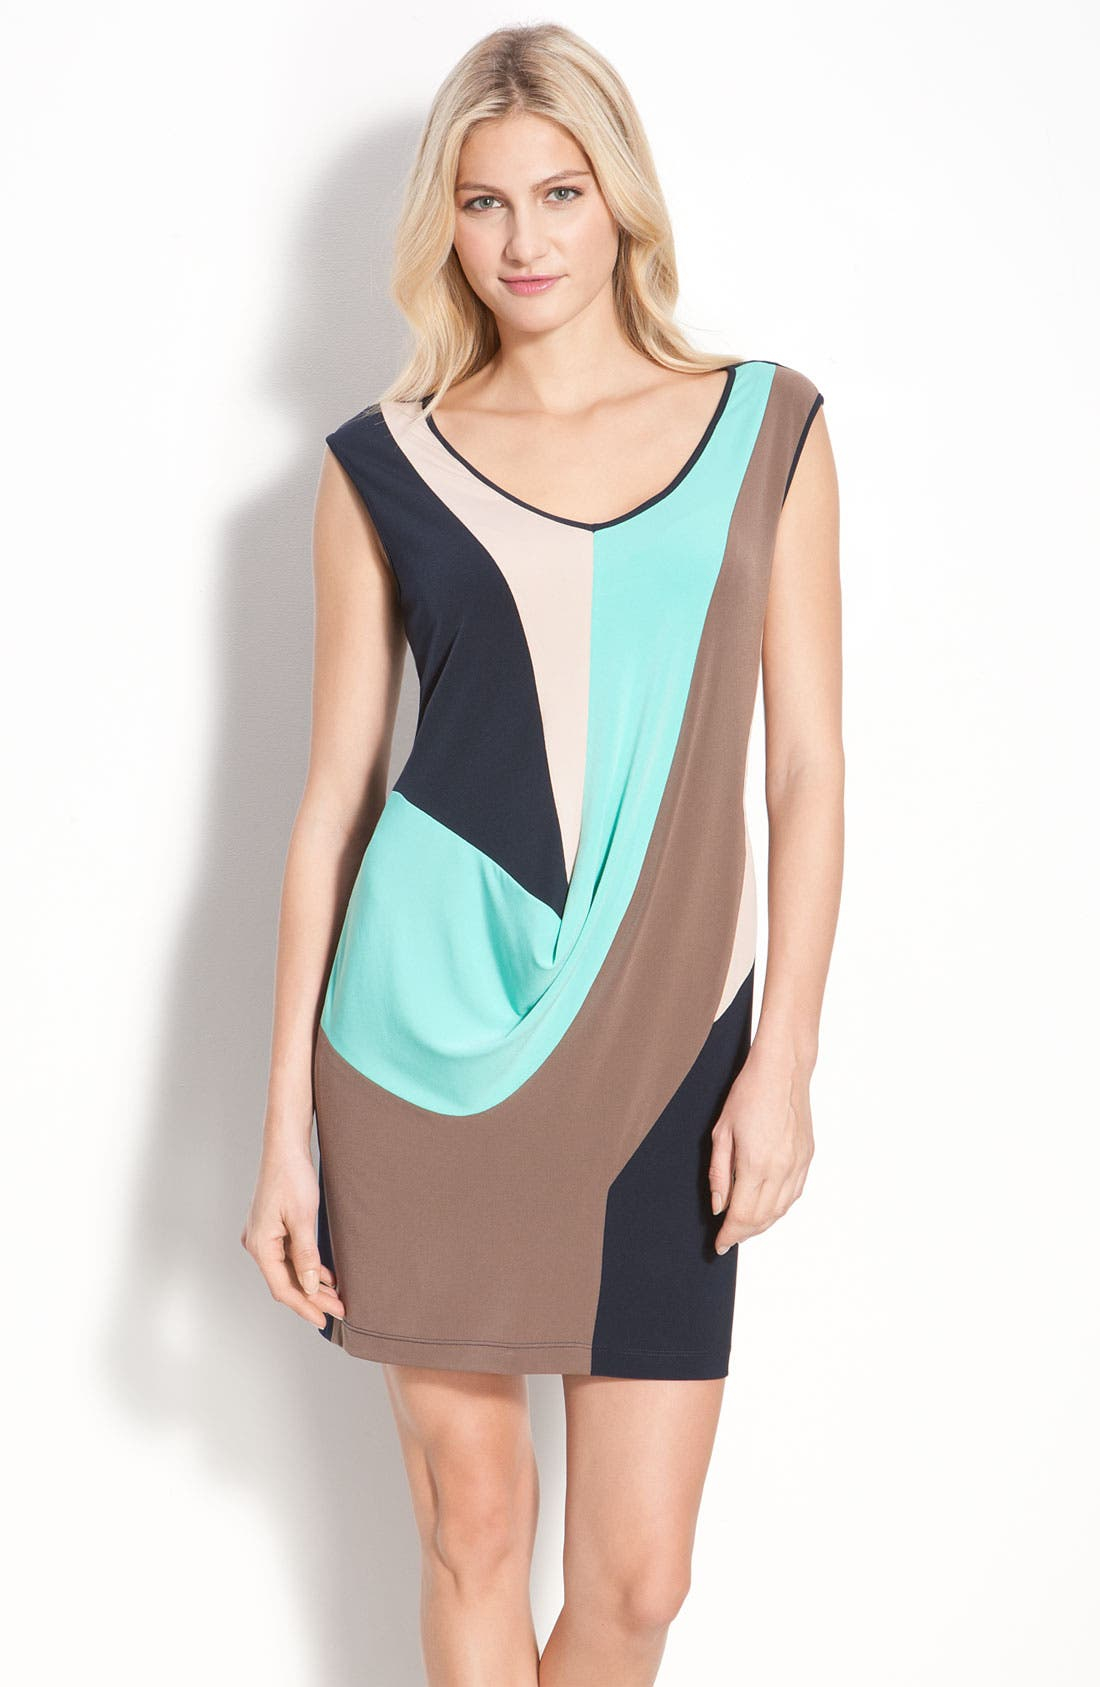 Main Image - Suzi Chin for Maggy Boutique Draped Colorblock Sheath Dress